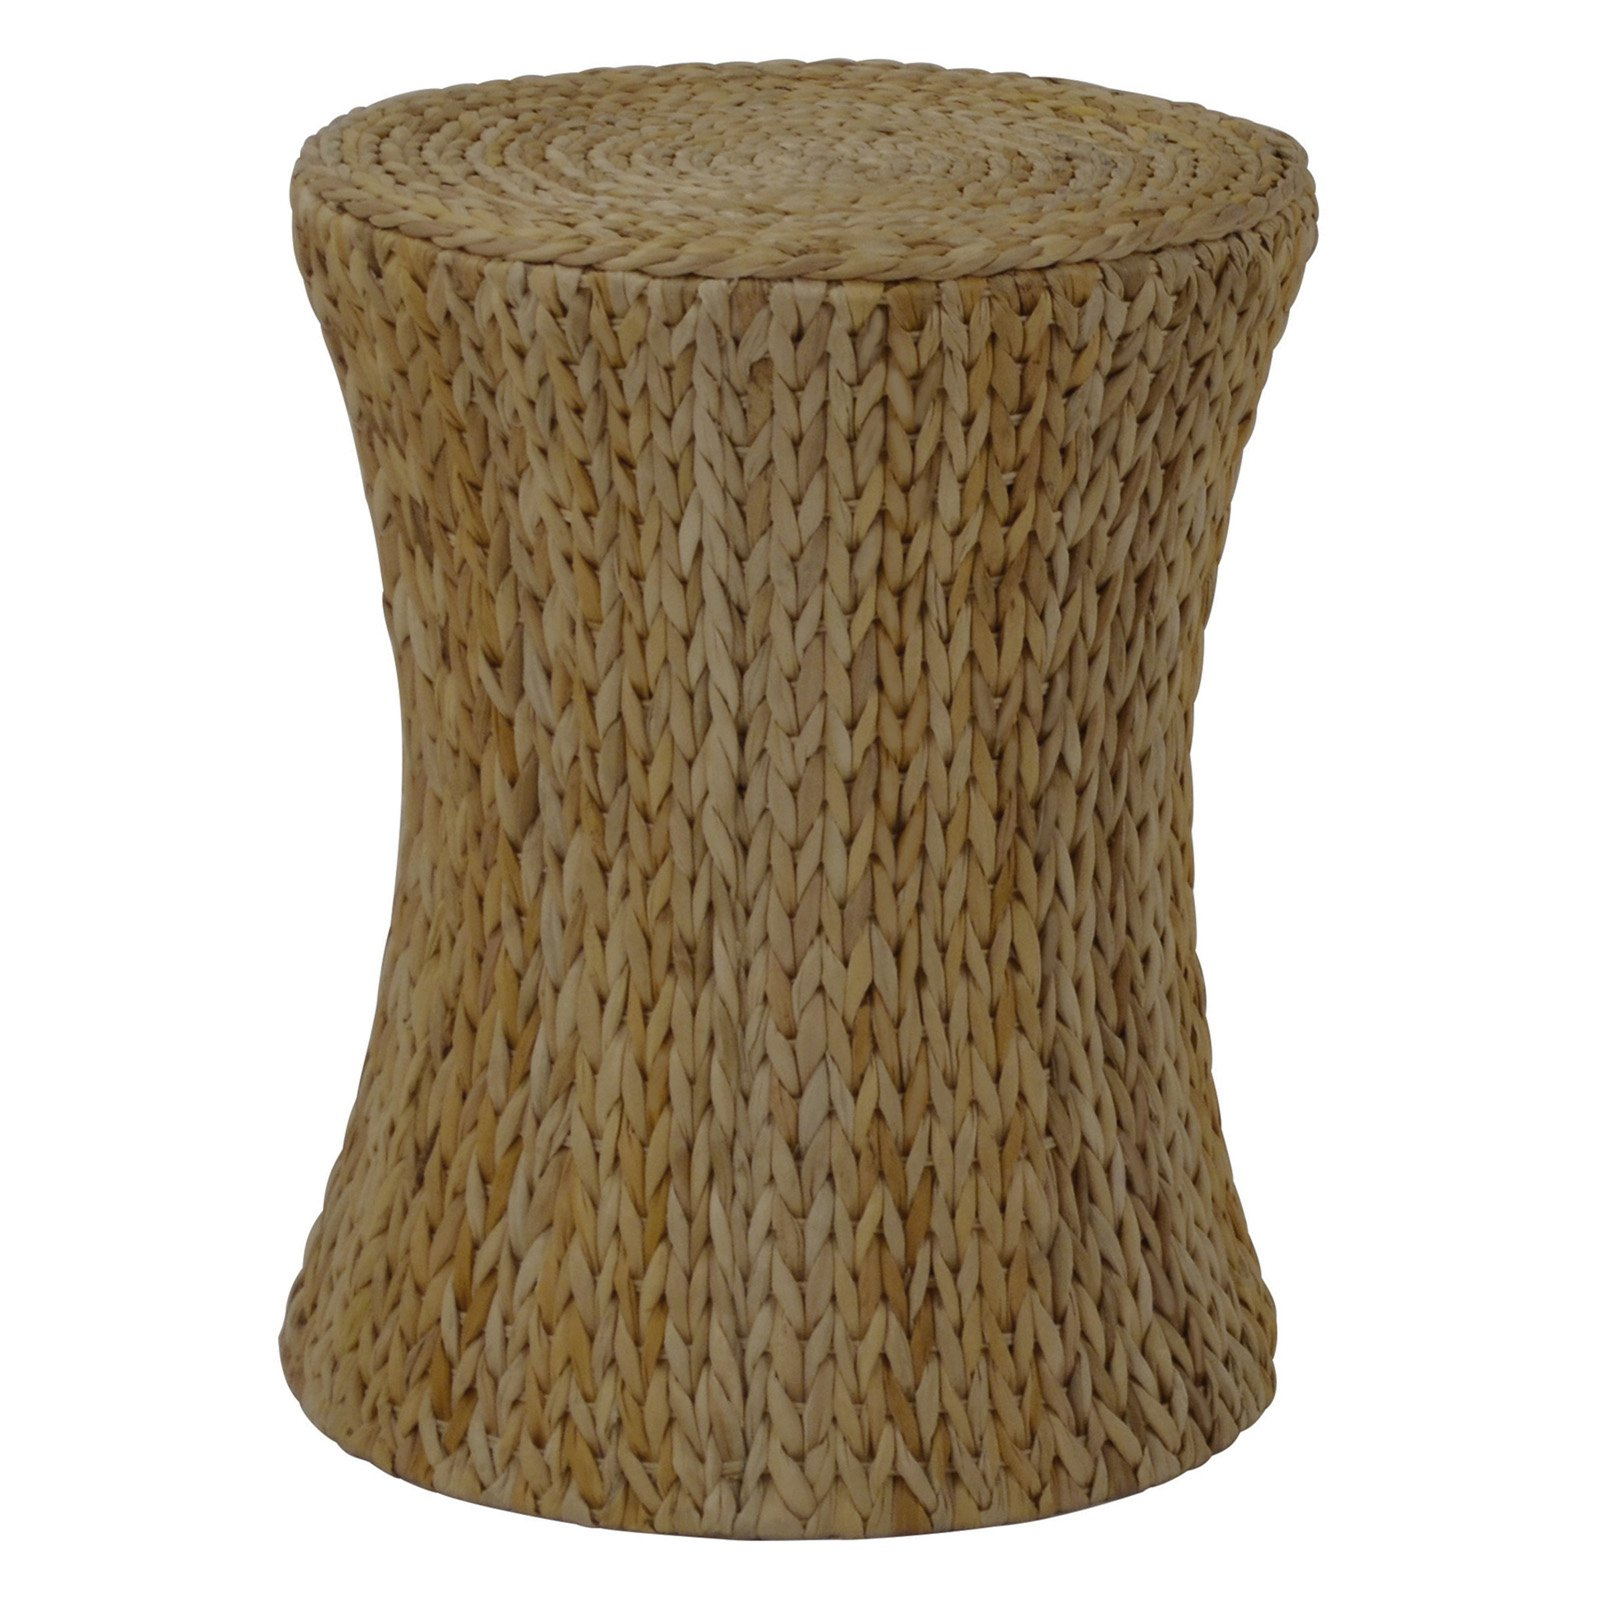 Gallerie Decor Bali Breeze Hourglass Accent Table